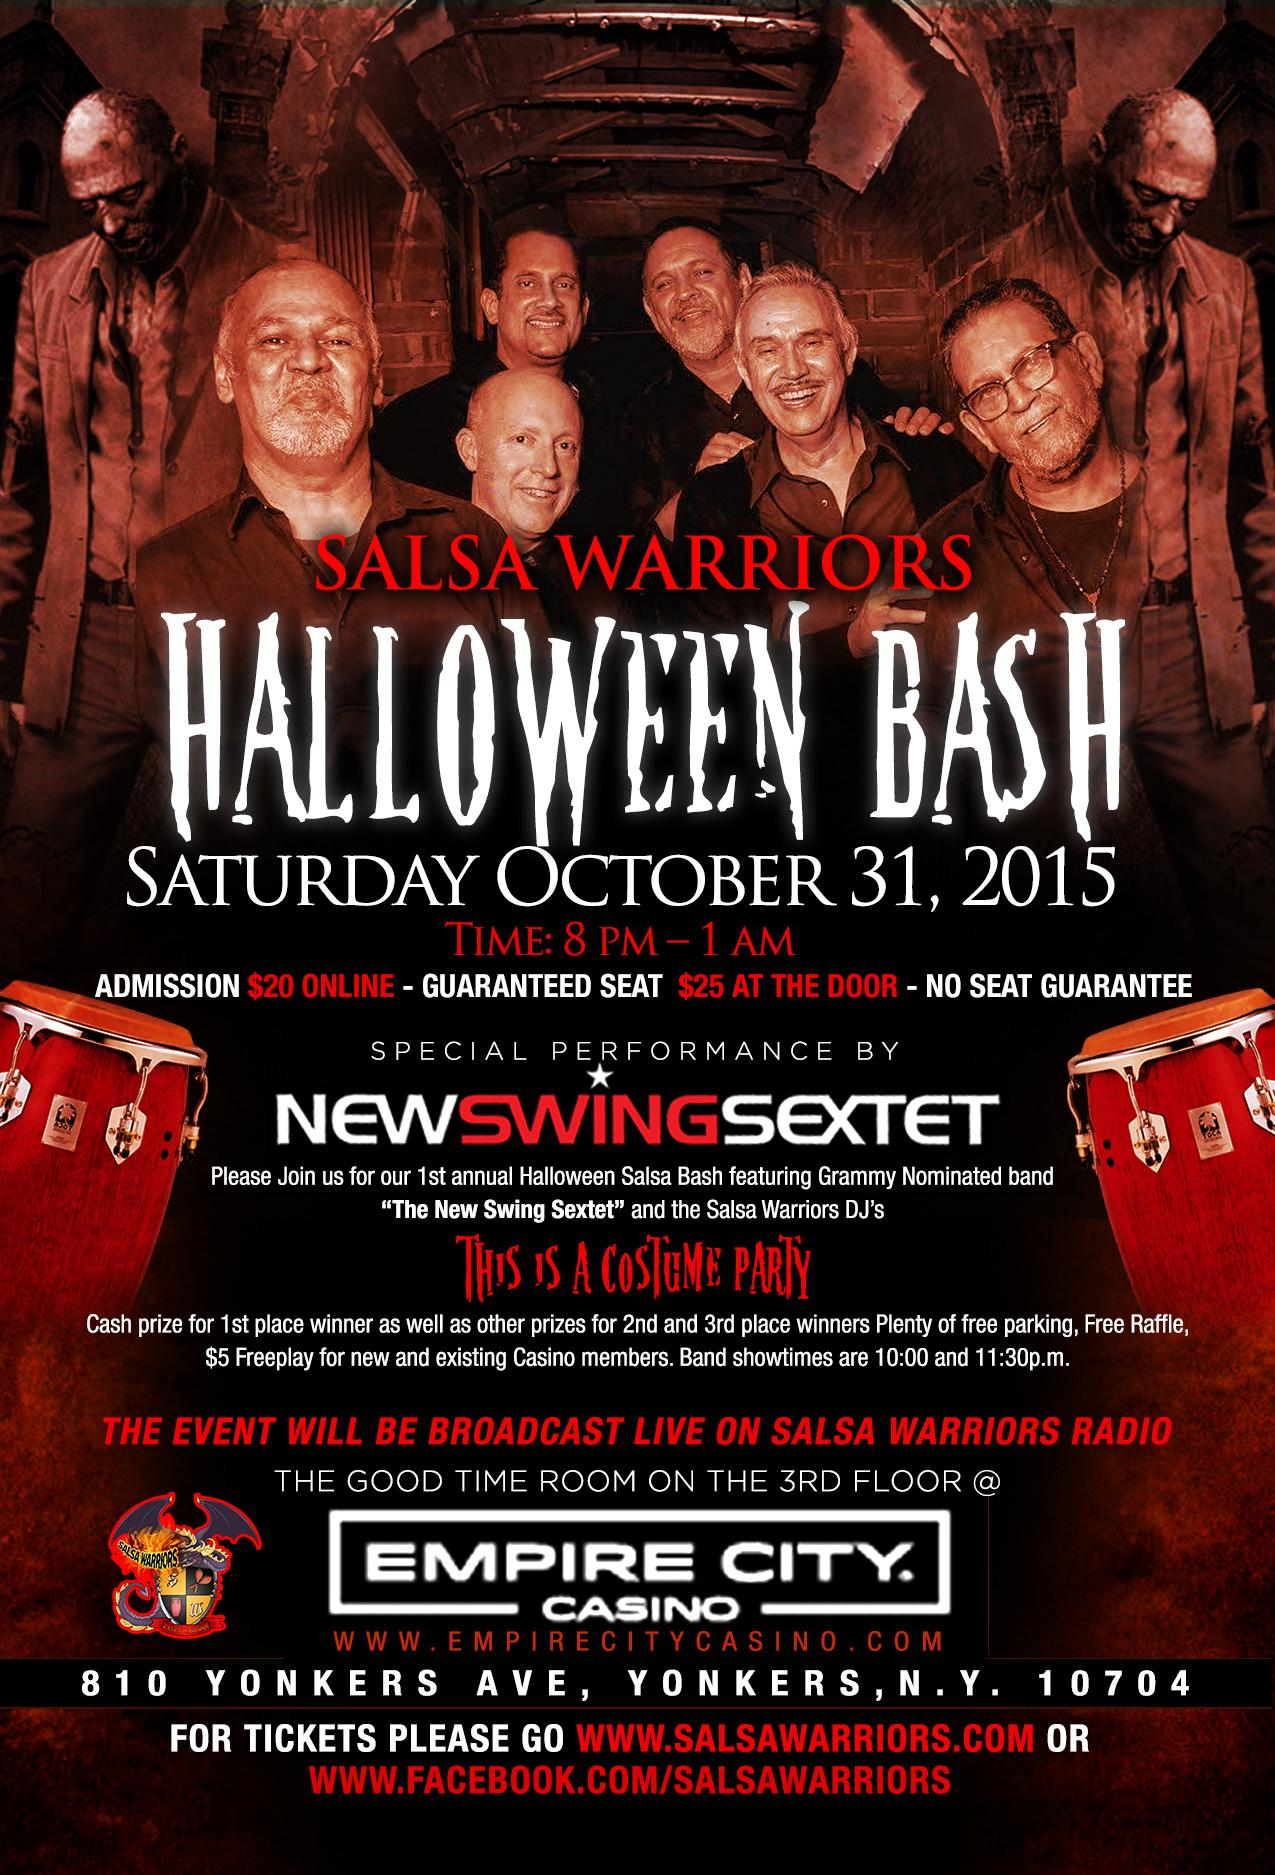 SALSA WARRIORS HALLOWEEN BASH LIVE WITH THE NEW SWING SEXTET ...